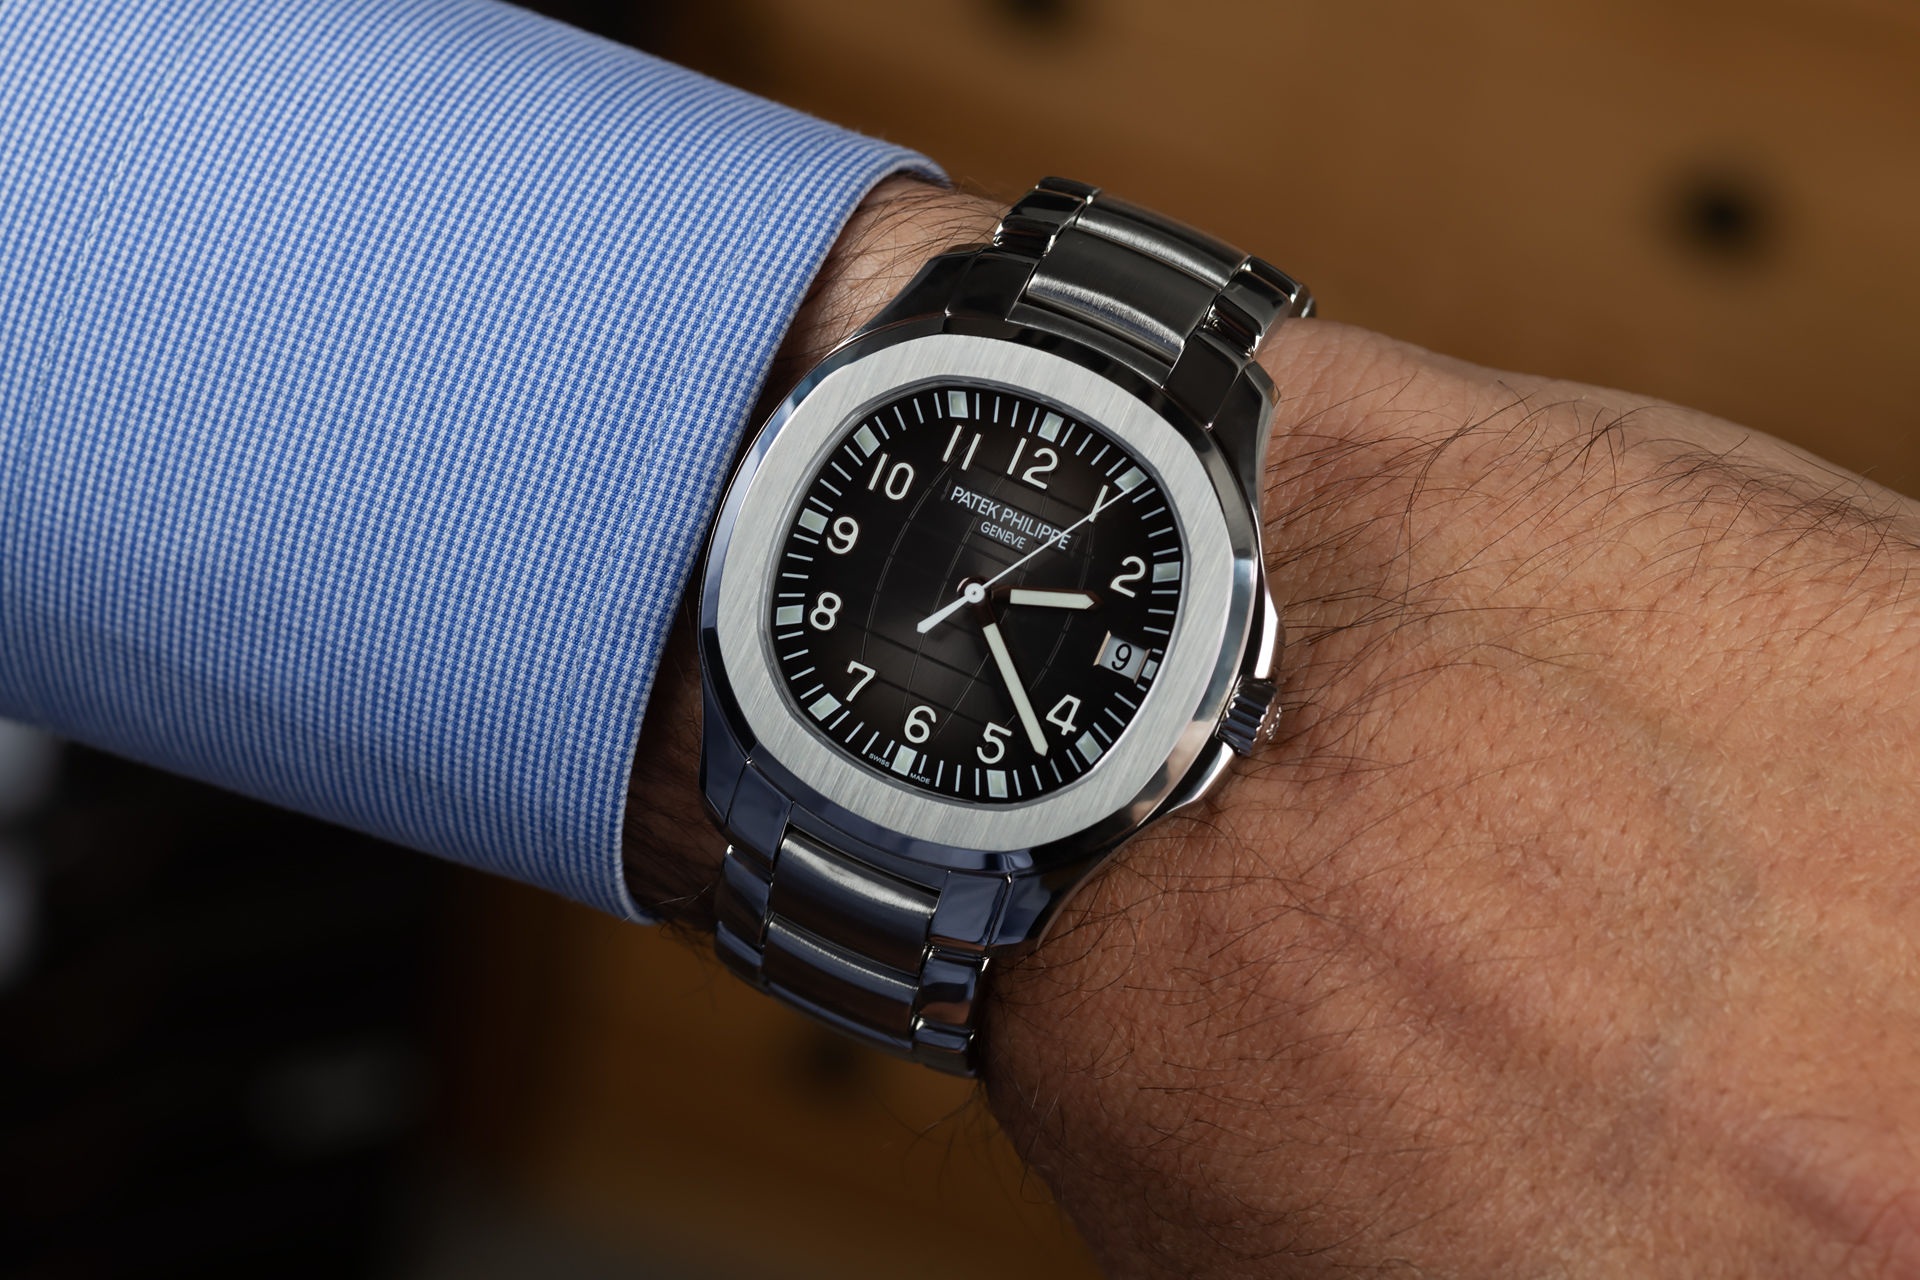 ref 5167/1A-001 | Brand New '2 Year Warranty' | Patek Philippe Aquanaut